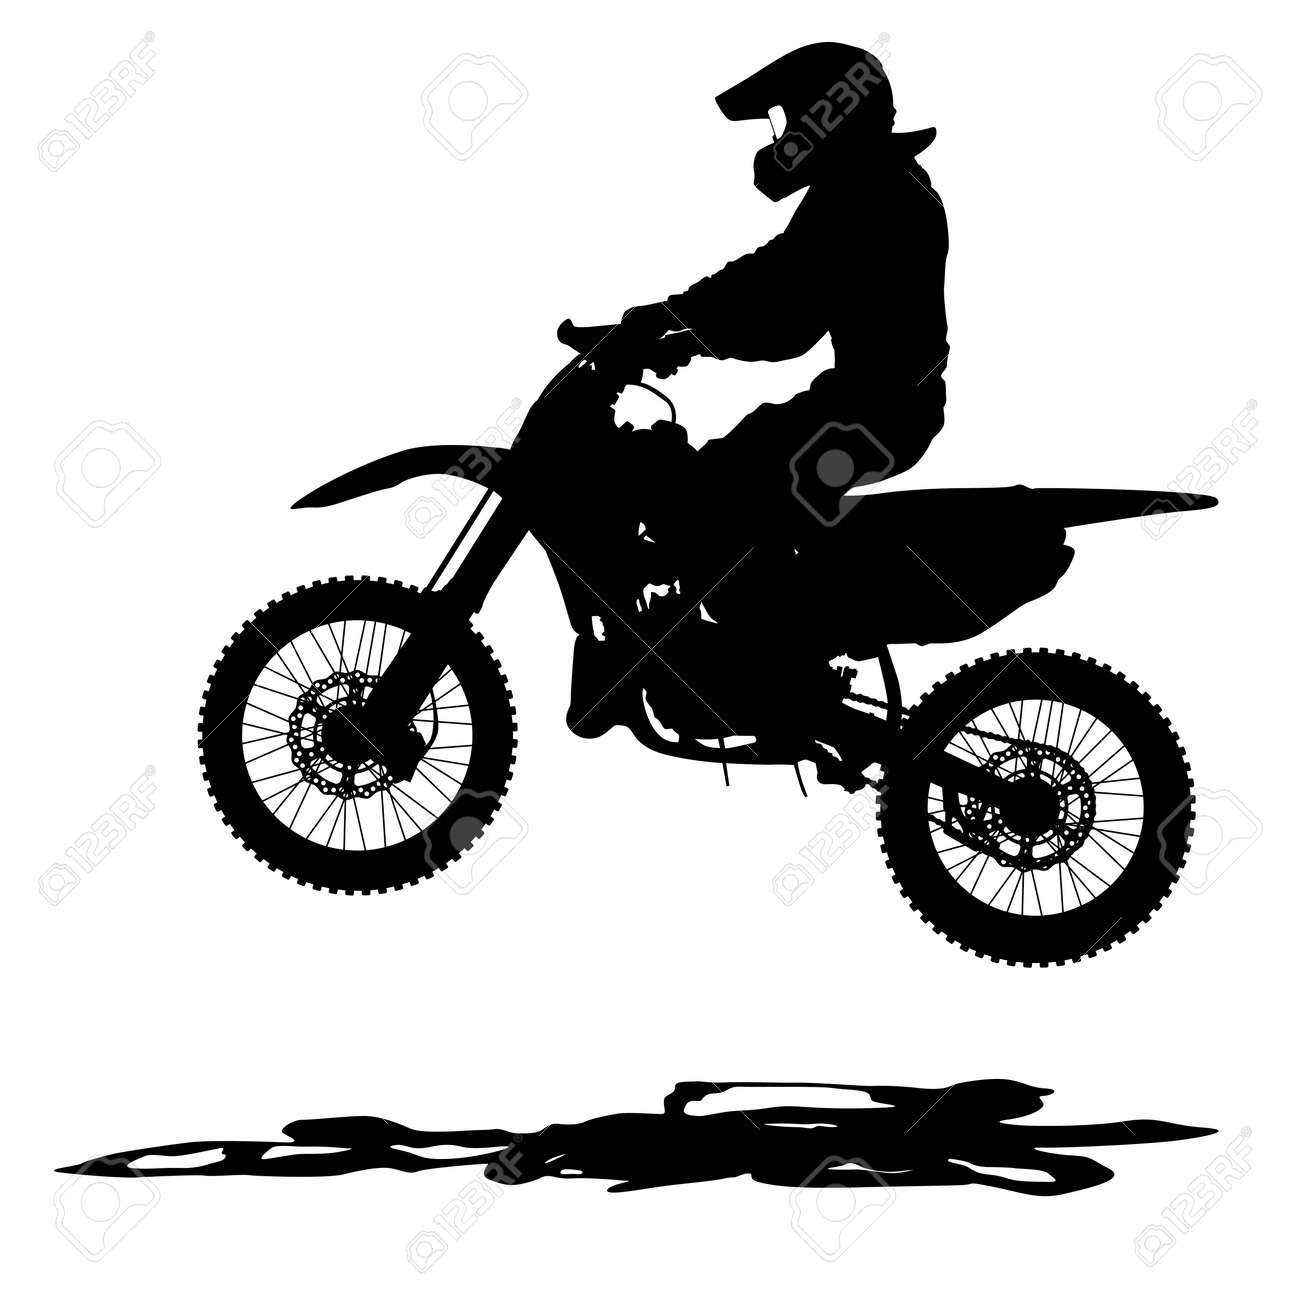 Black Silhouettes Motocross Rider On A Motorcycle Vector Illustrations Royalty Free Cliparts Vectors And Stock Illustration Image 37738022